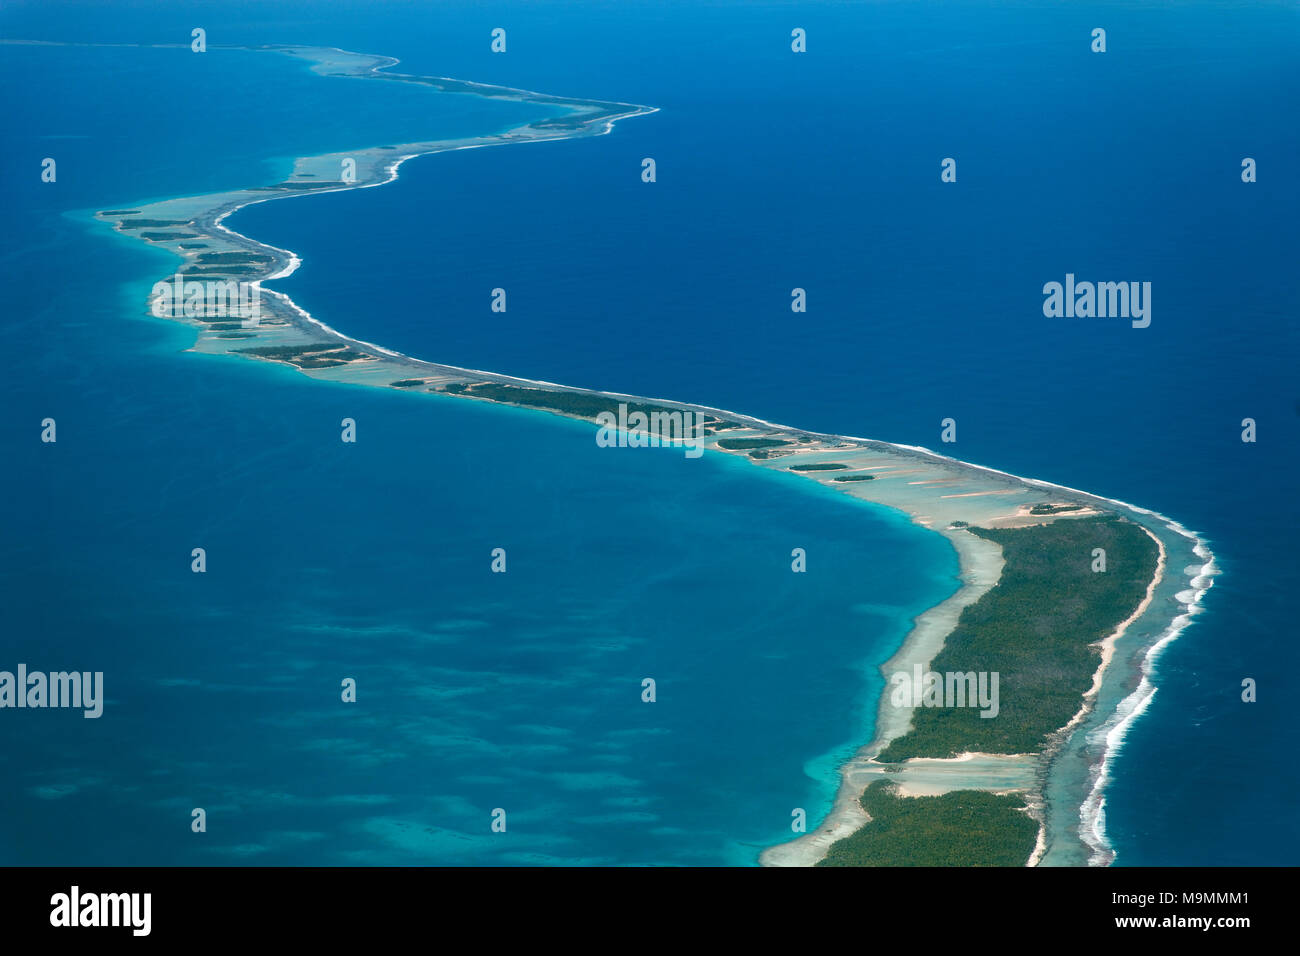 Coral reef with clouds, reef fringes in the sea, Tikehau Atoll, Pacific Ocean, society islands, Windward Islands - Stock Image